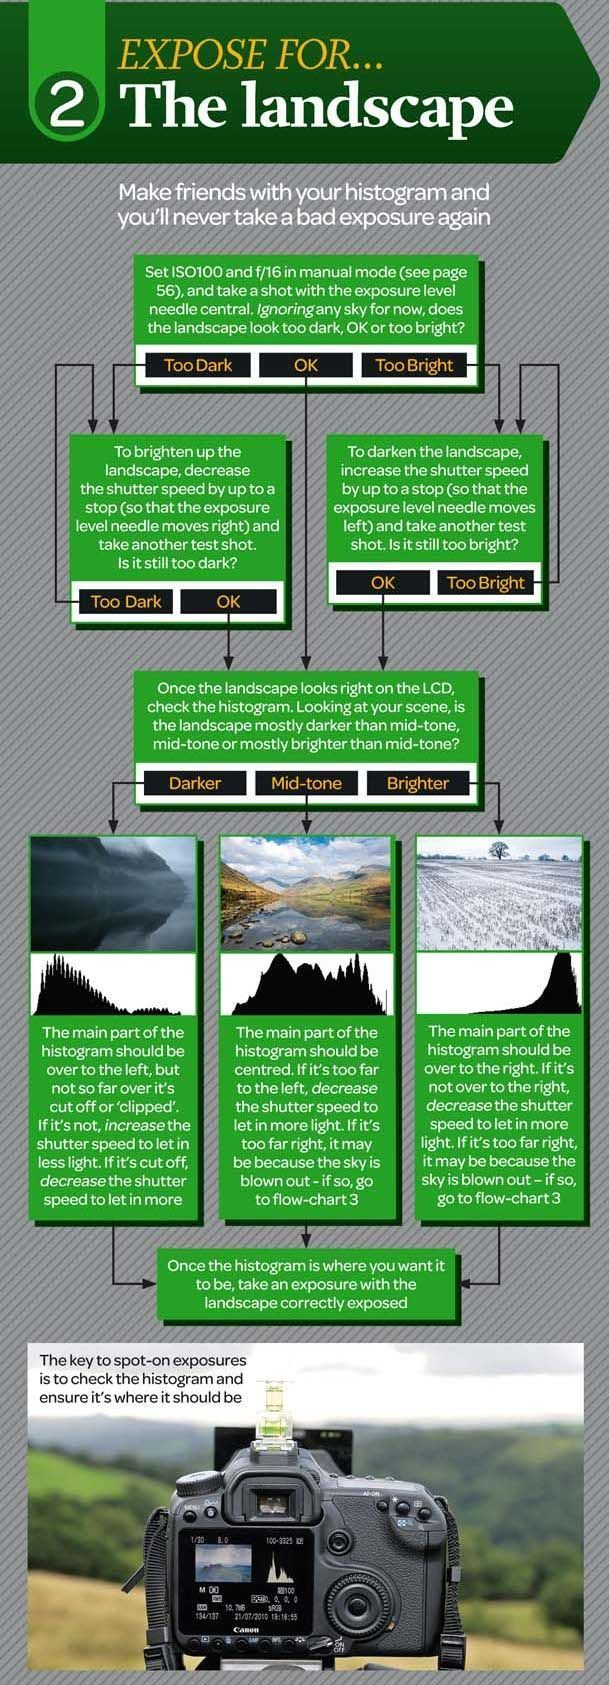 "Expose for the Landscape: Photography Cheat Sheet (""Make friends with your histogram and you'll never take a bad exposure again"") #photographylessons"